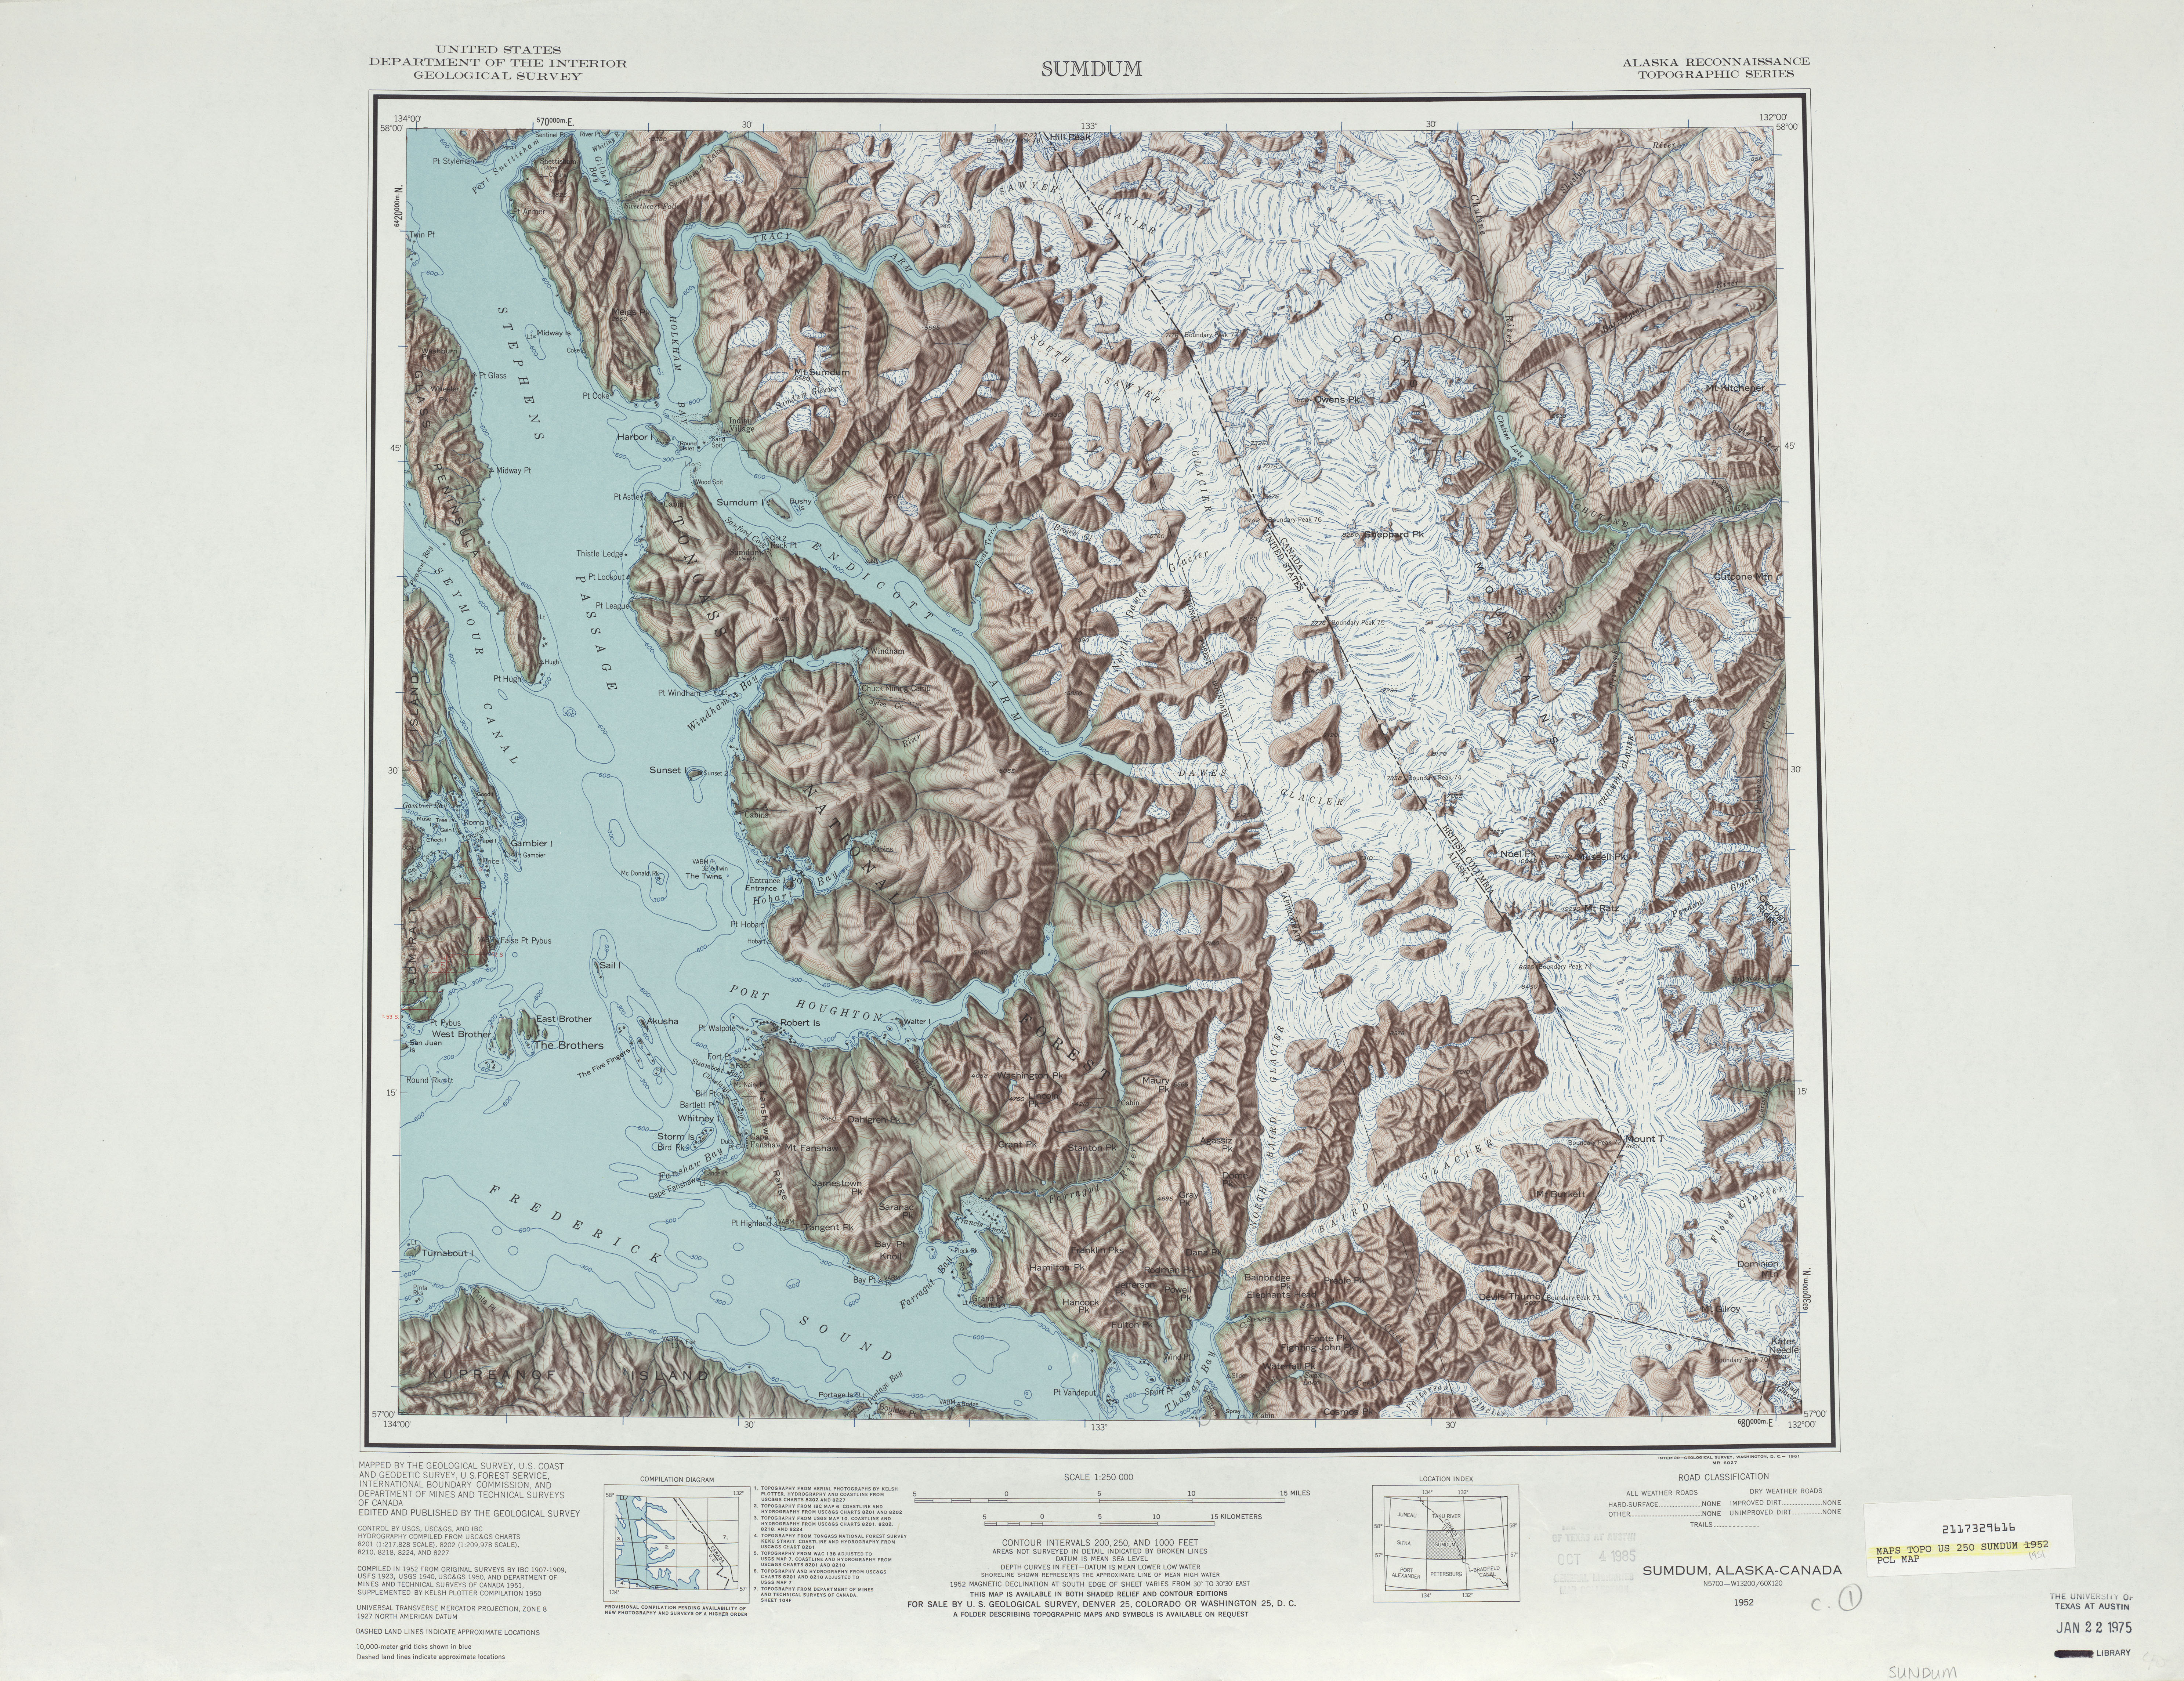 Sumdum Shaded Relief Map Sheet, United States 1951